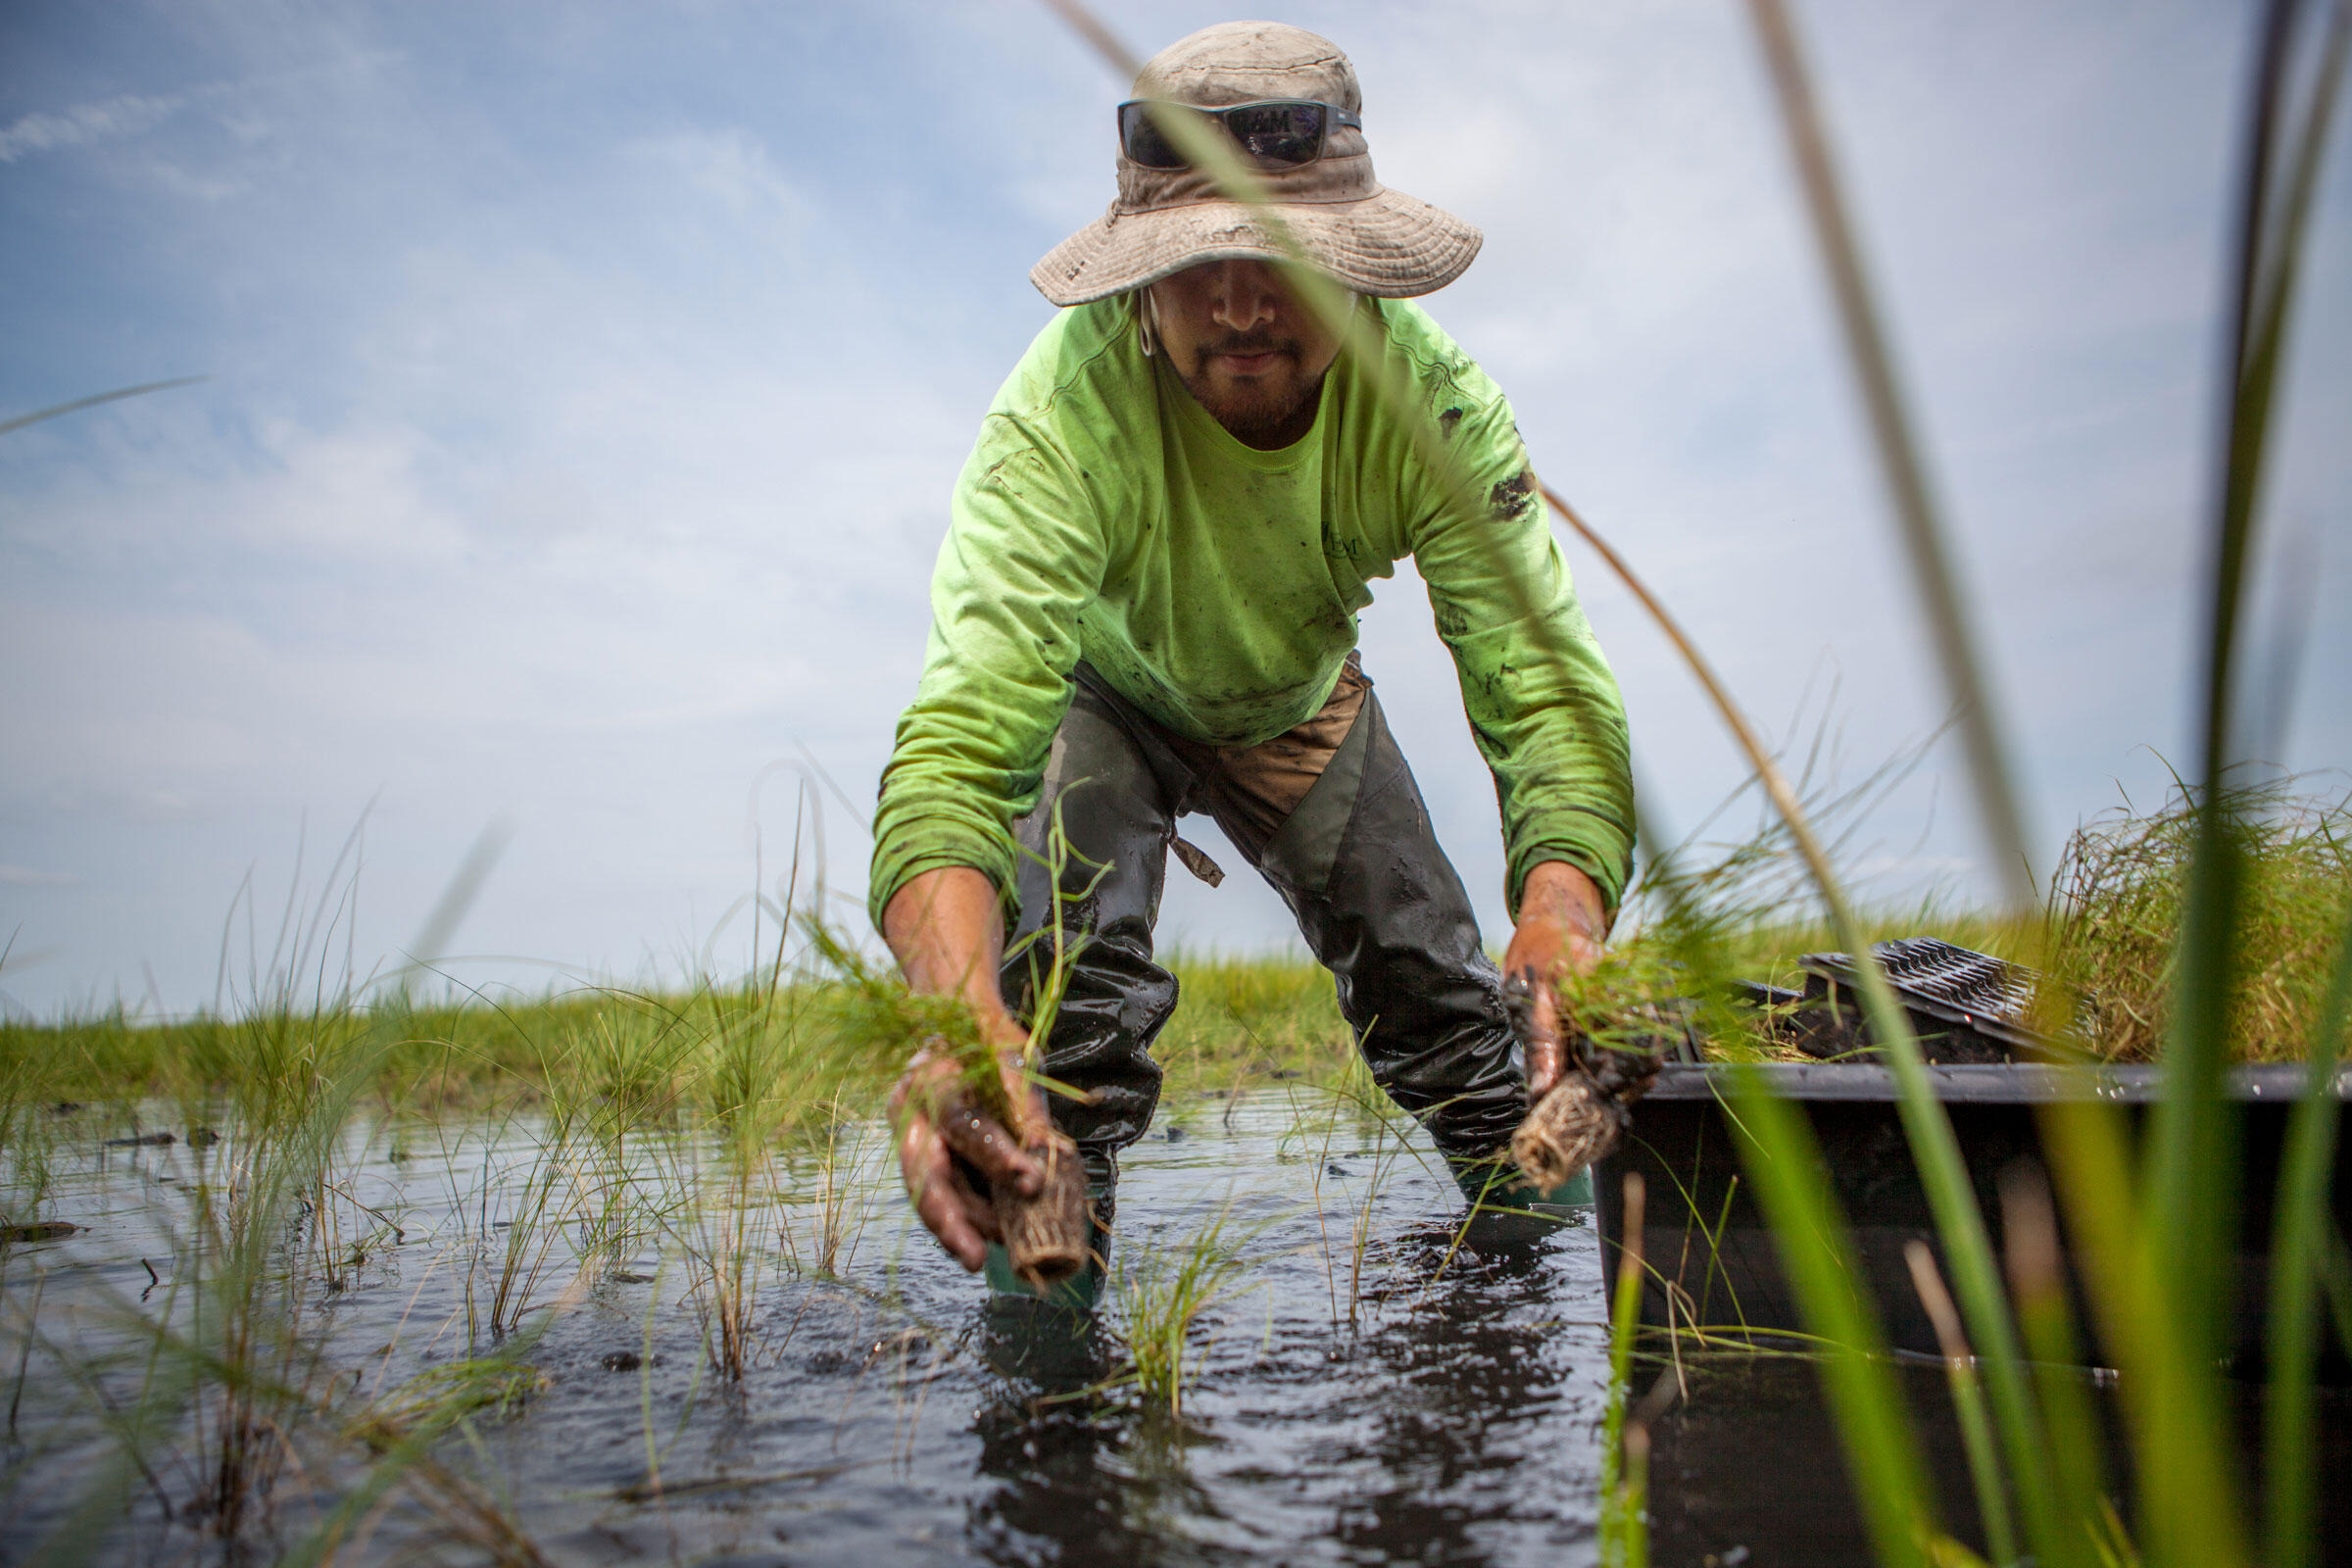 A landscaper plants grass at Blackwater National Wildlife Refuge to restore marsh inundated by rising seas. Camilla Cerea/Audubon